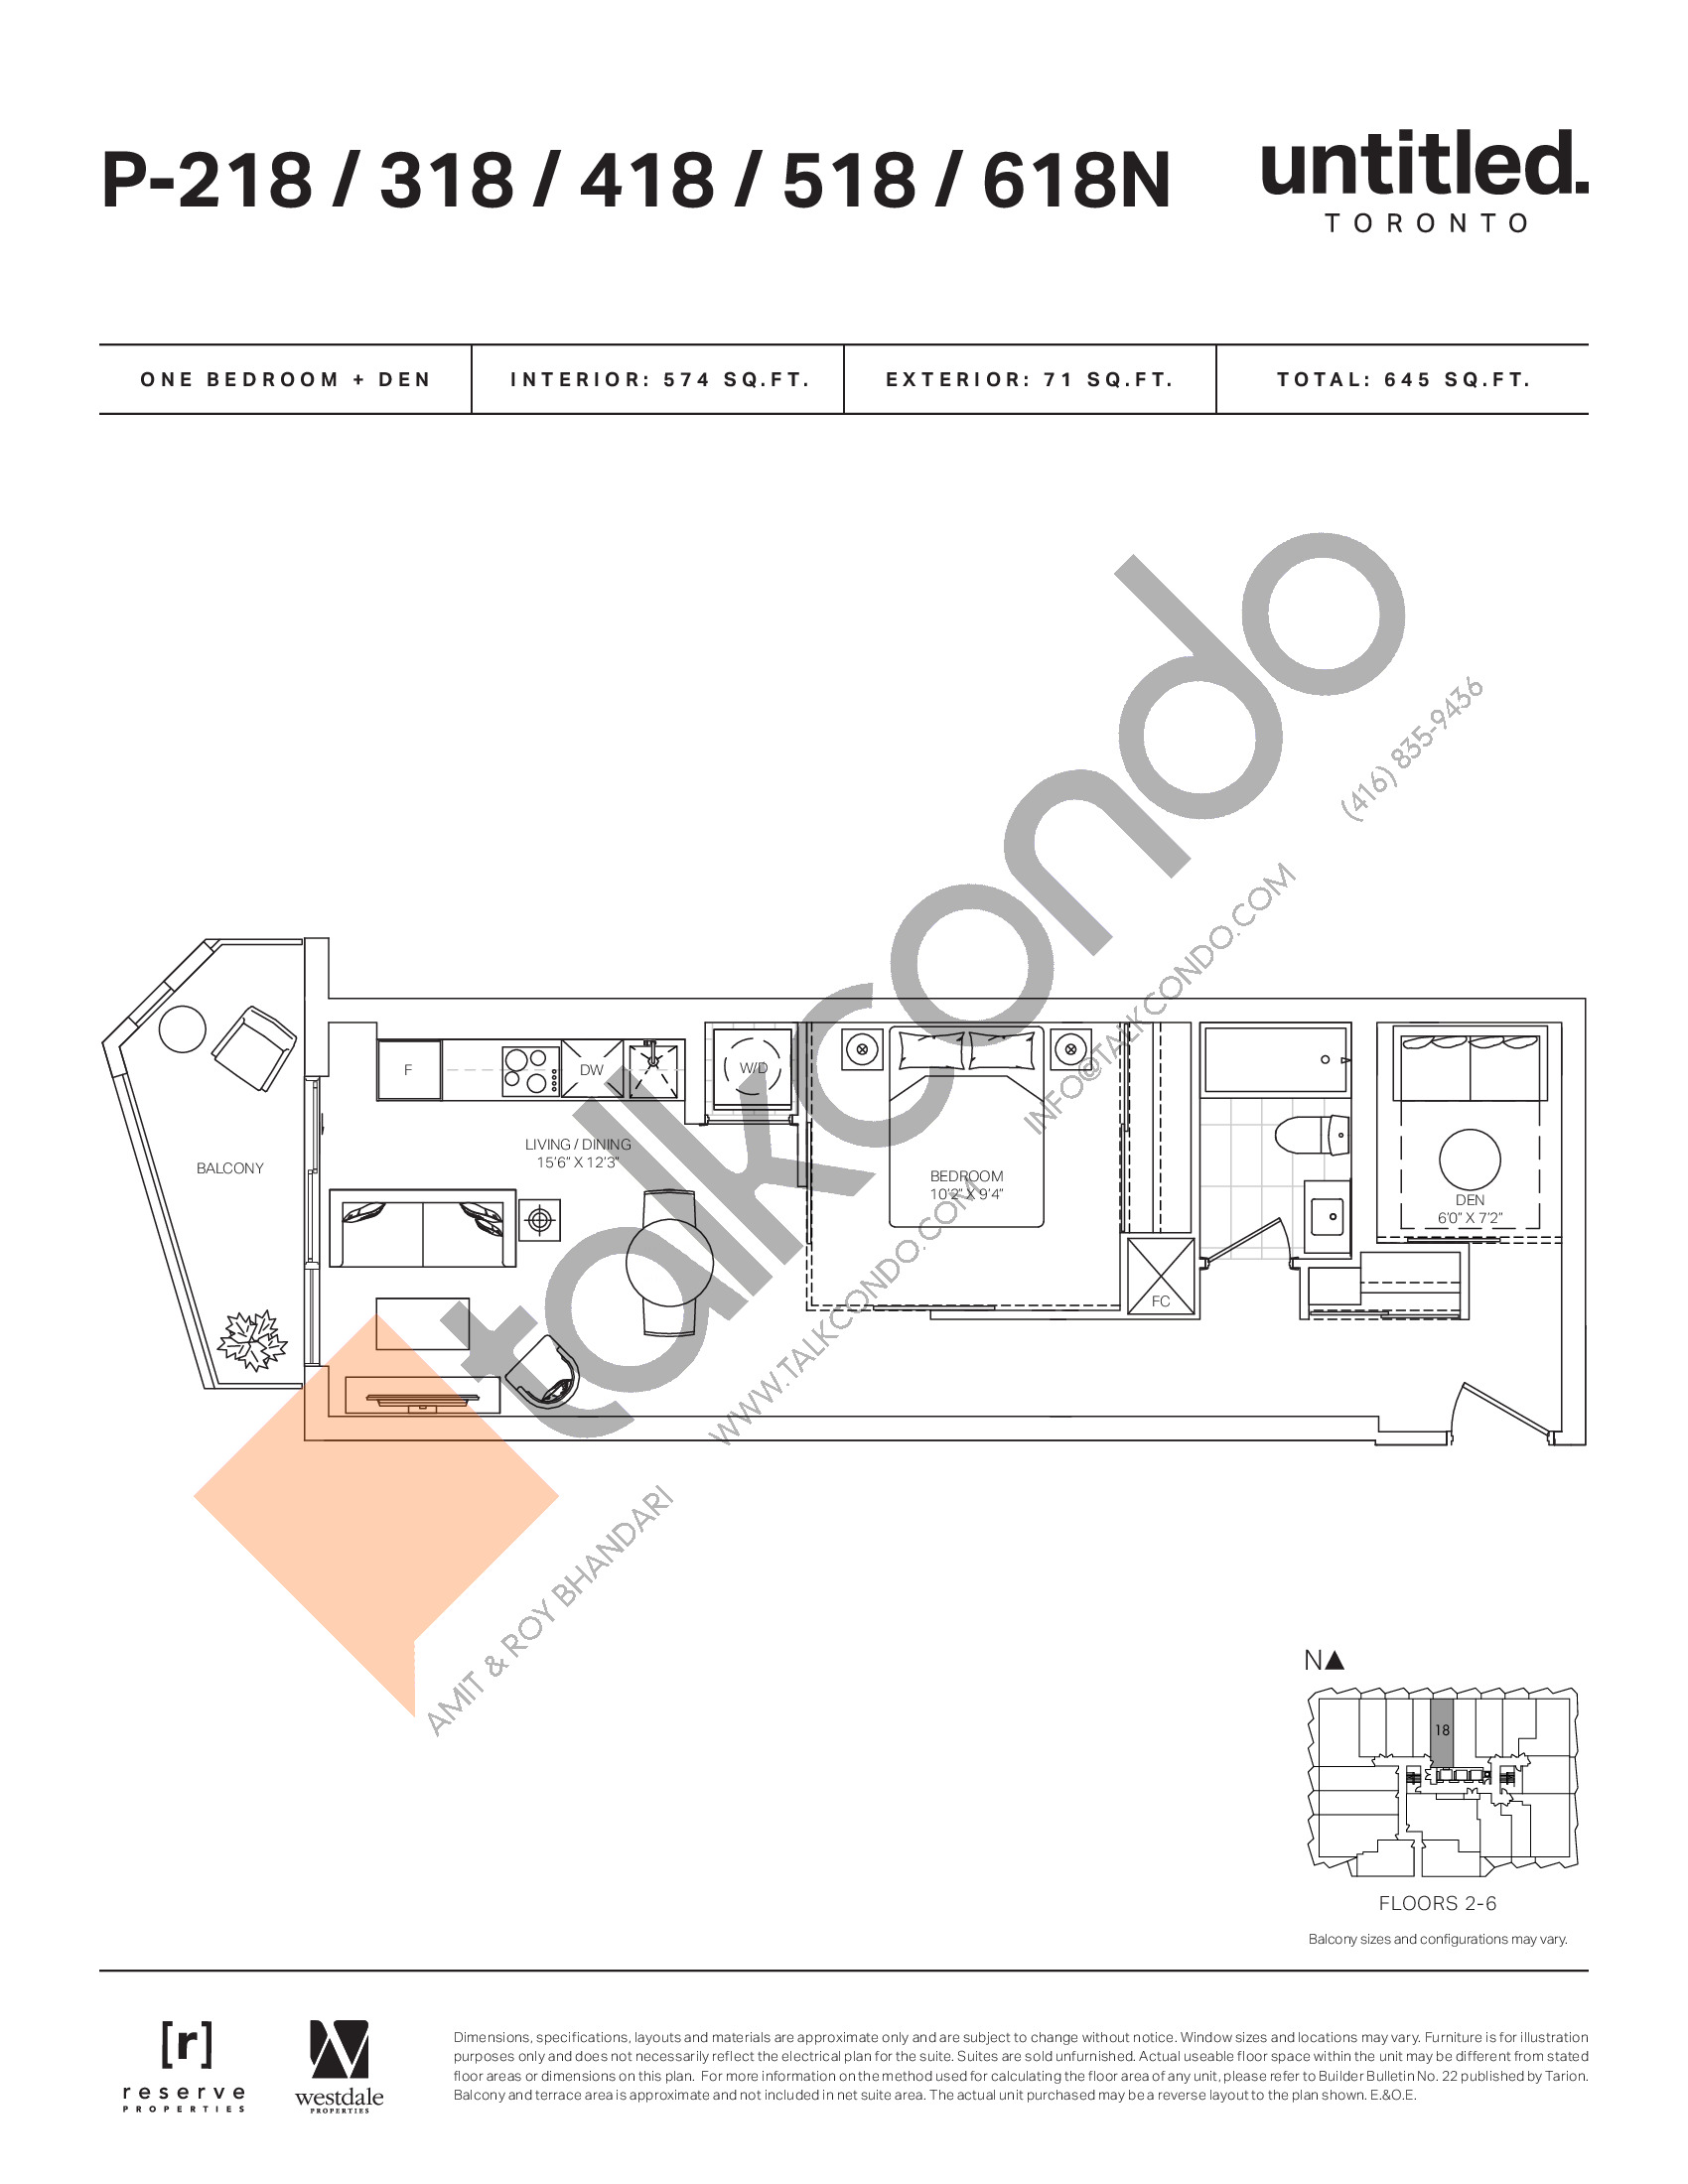 P-218/318/418/518/618N Floor Plan at Untitled North Tower Condos - 574 sq.ft